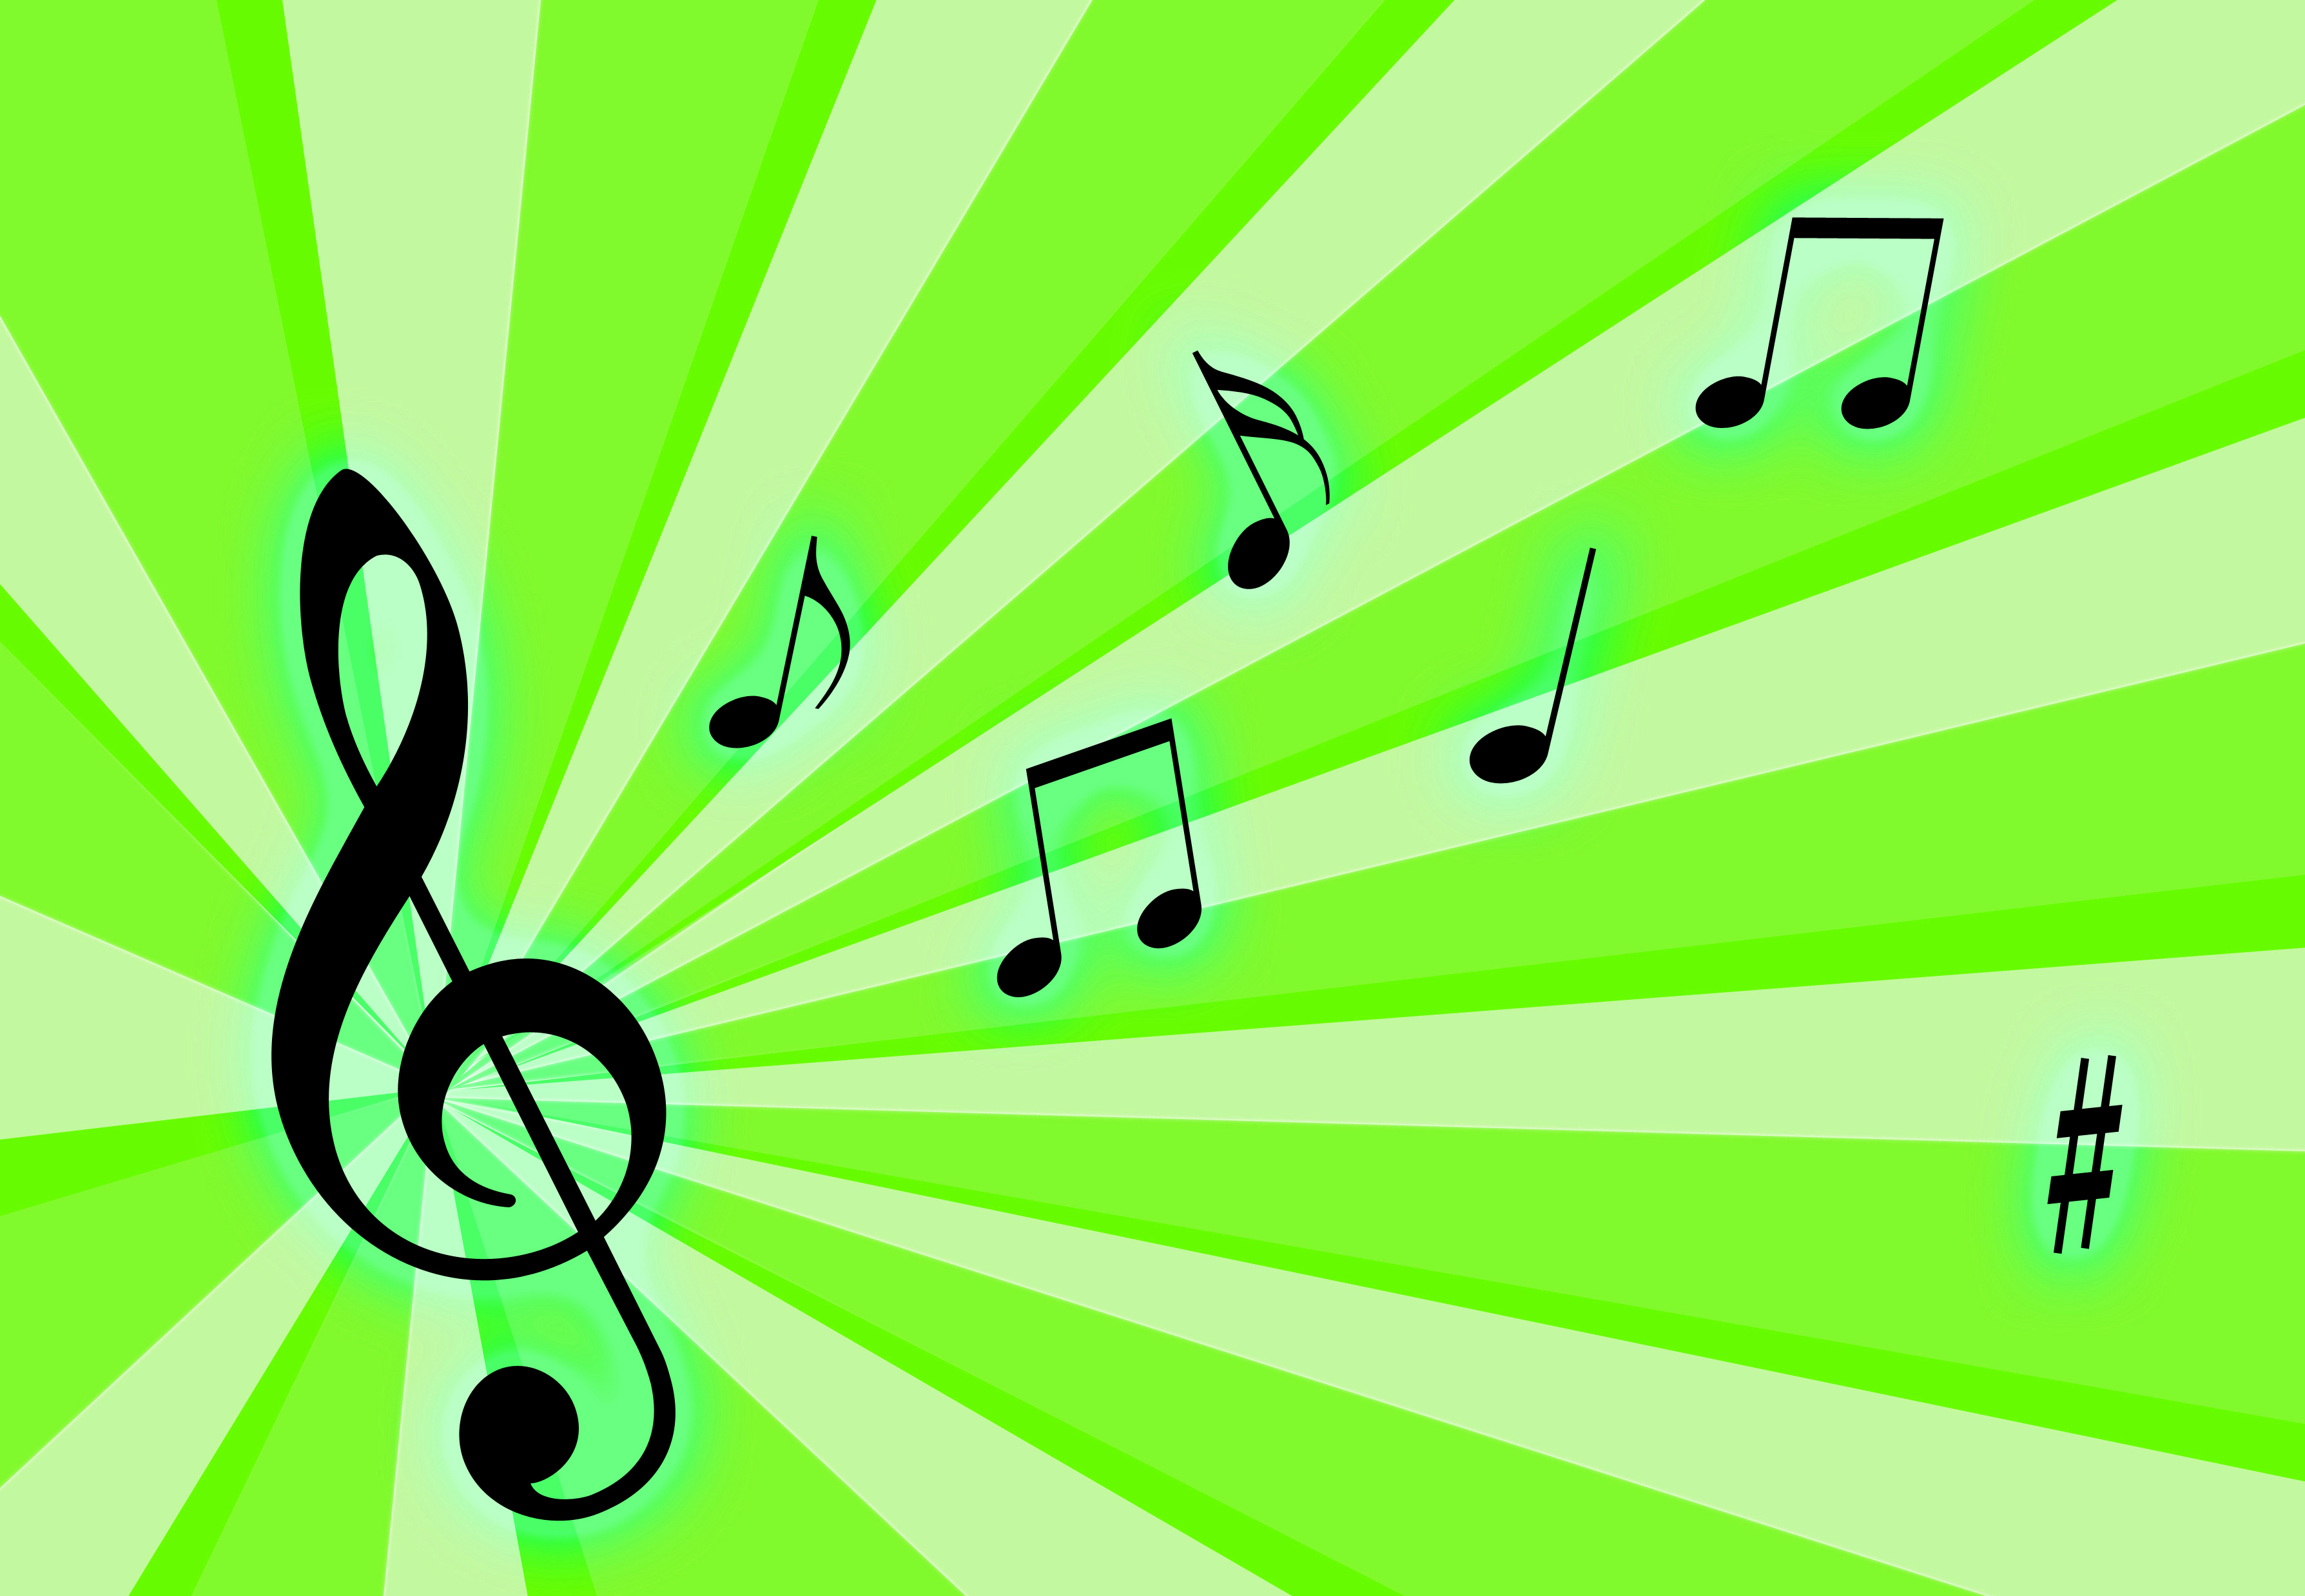 Musical notes one bright neon green background image